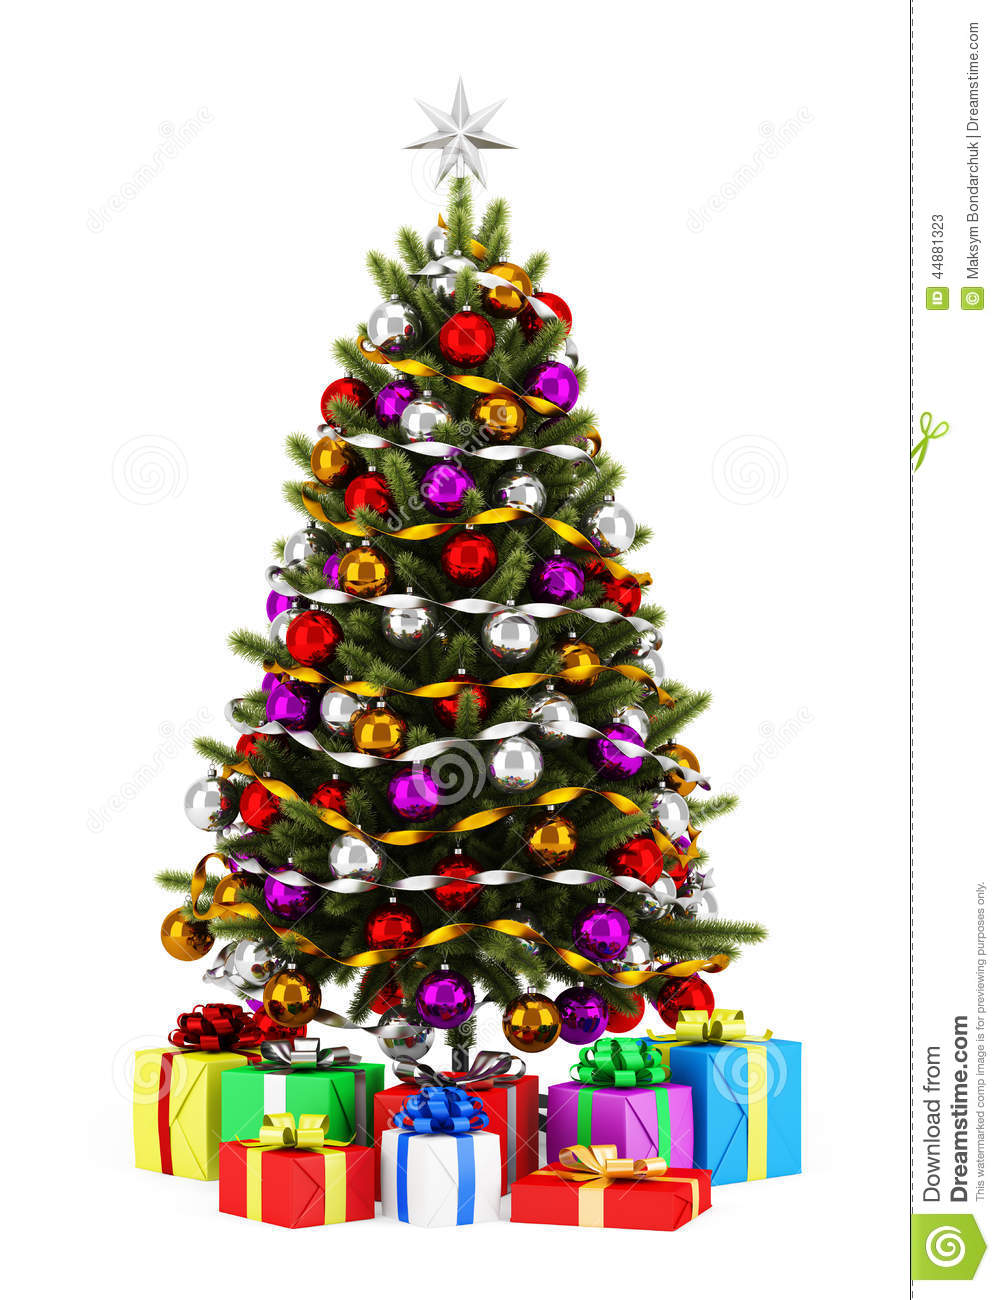 Decorated christmas tree with gift boxes isolated on white